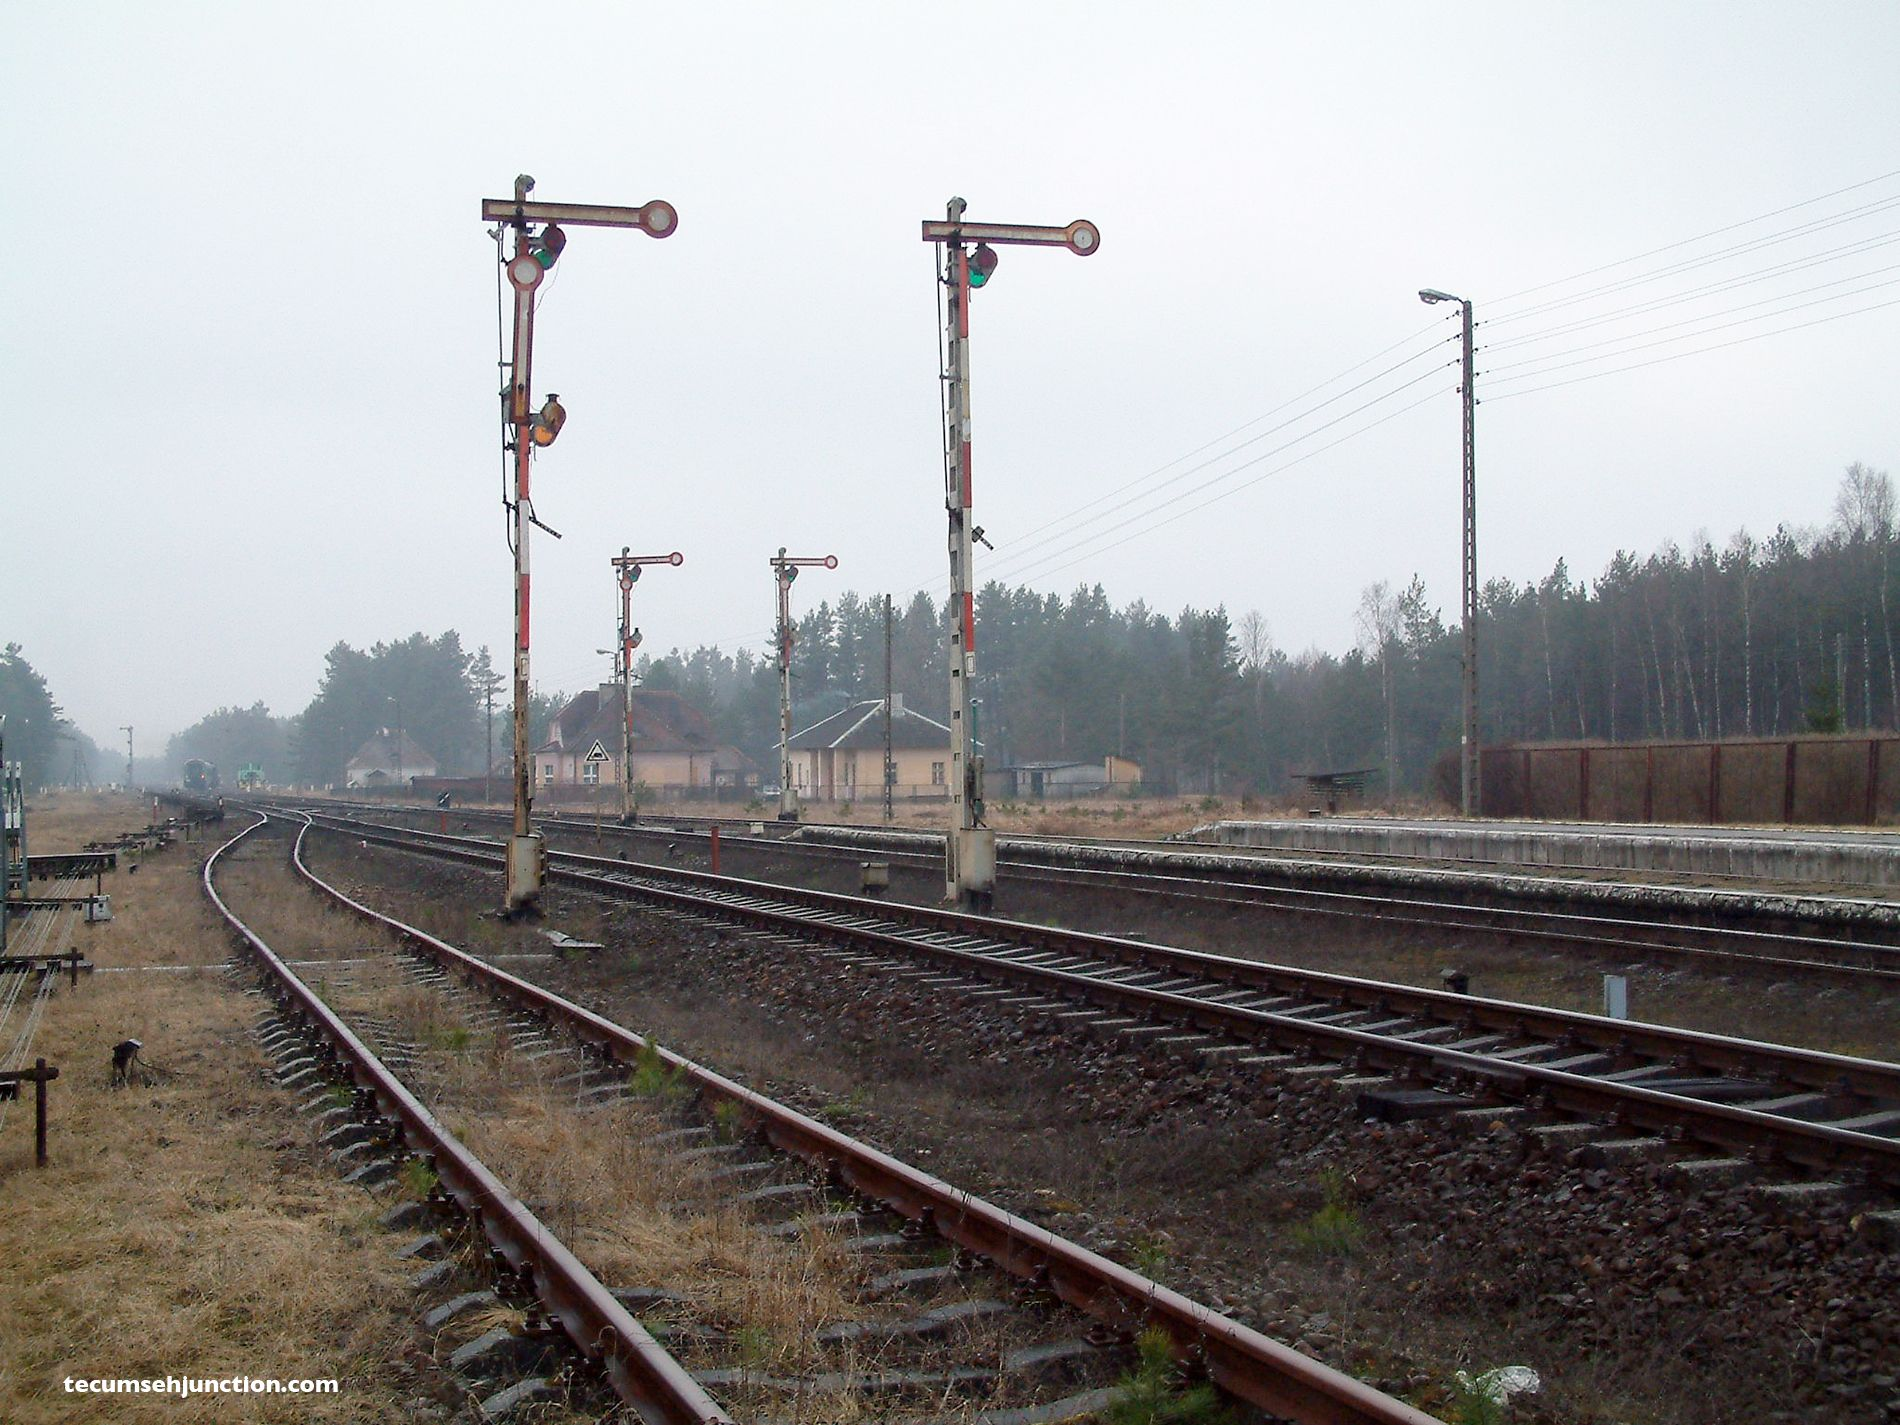 Semaphore signalling at the south end of Bąk.